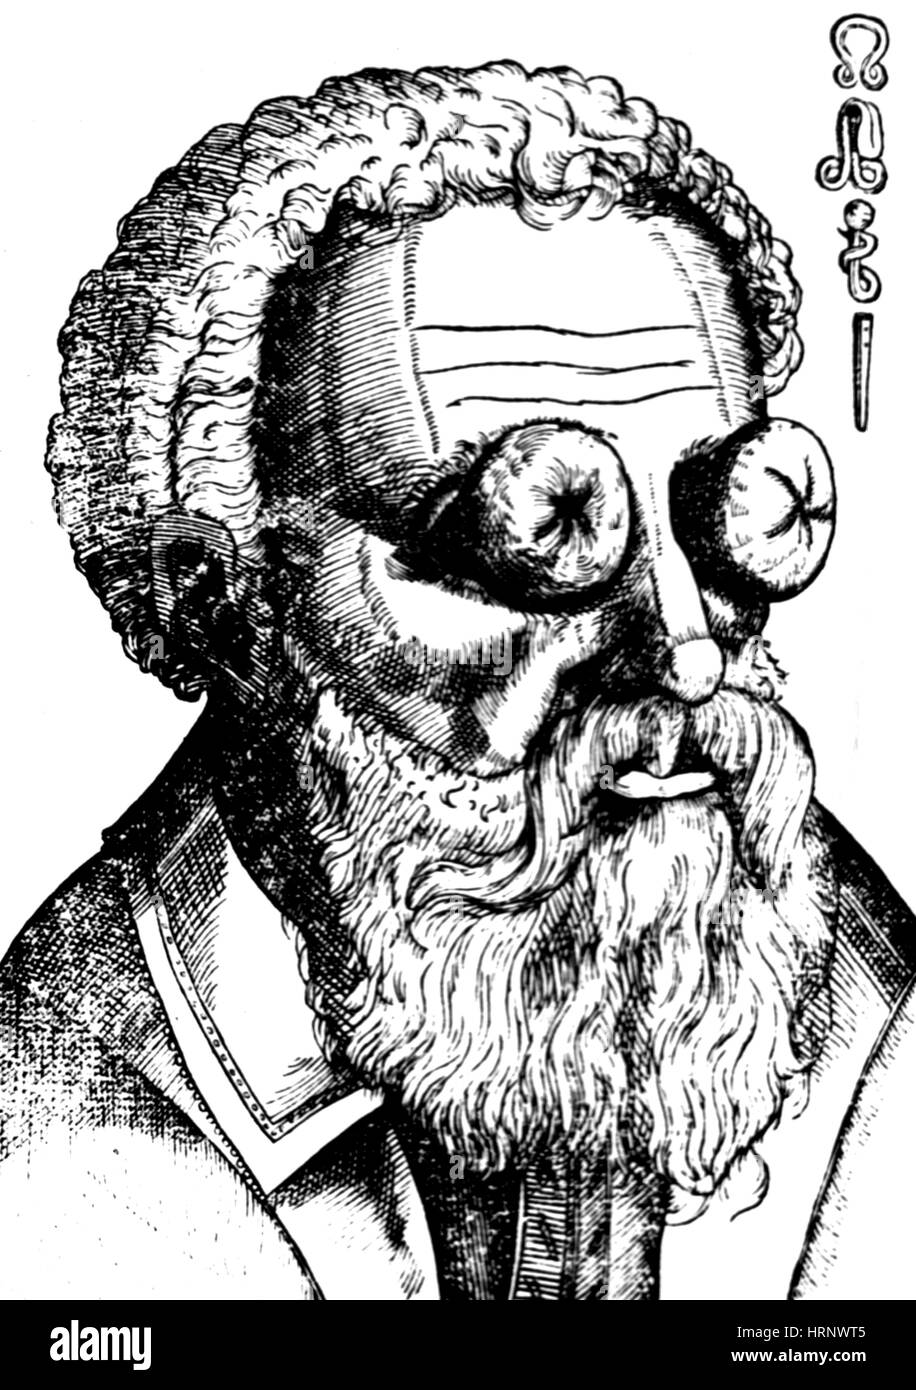 Eye Growths and Witchcraft, 1583 - Stock Image